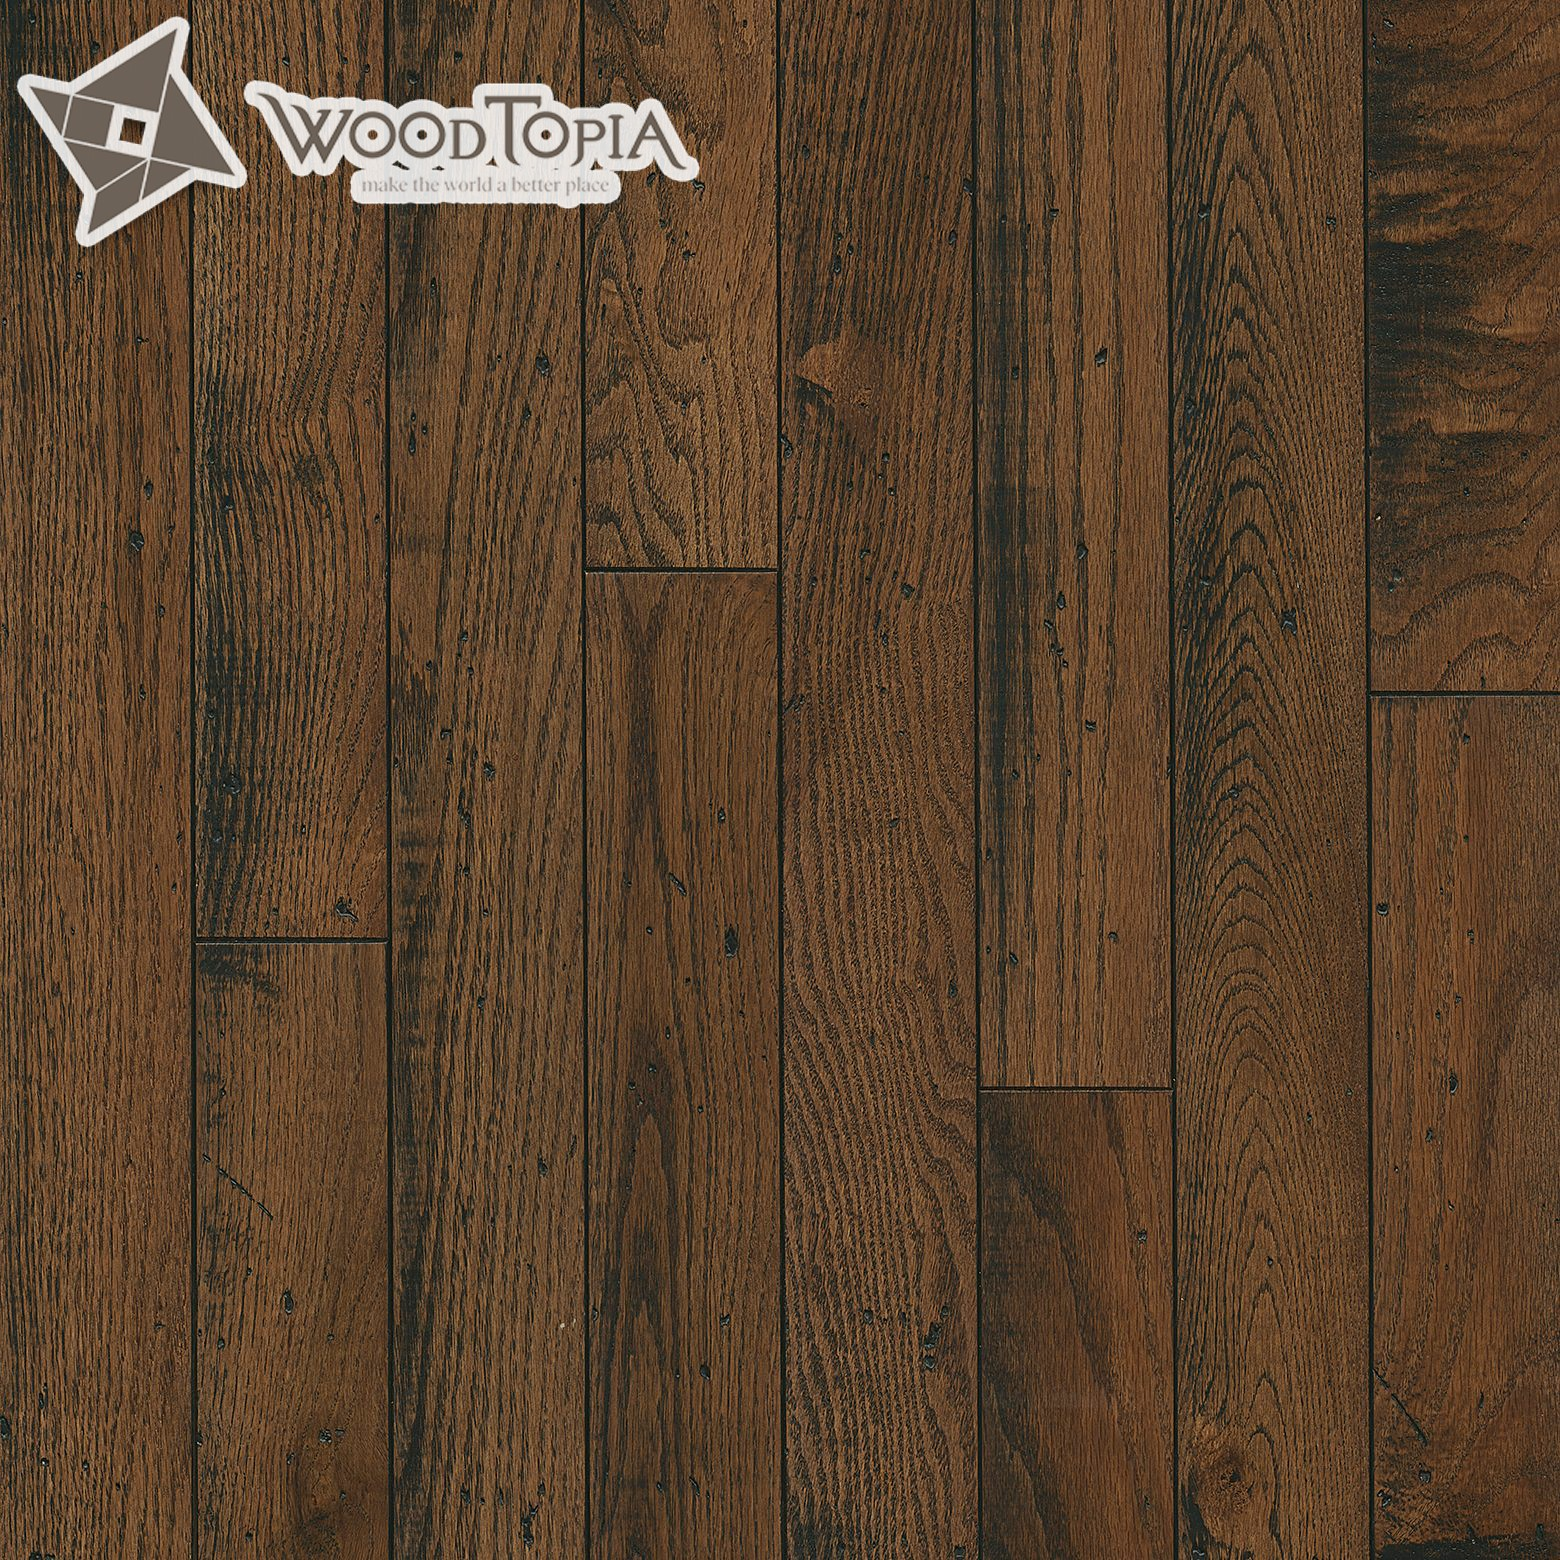 Deco Wood Flooring, Deco Wood Flooring Suppliers And Manufacturers At